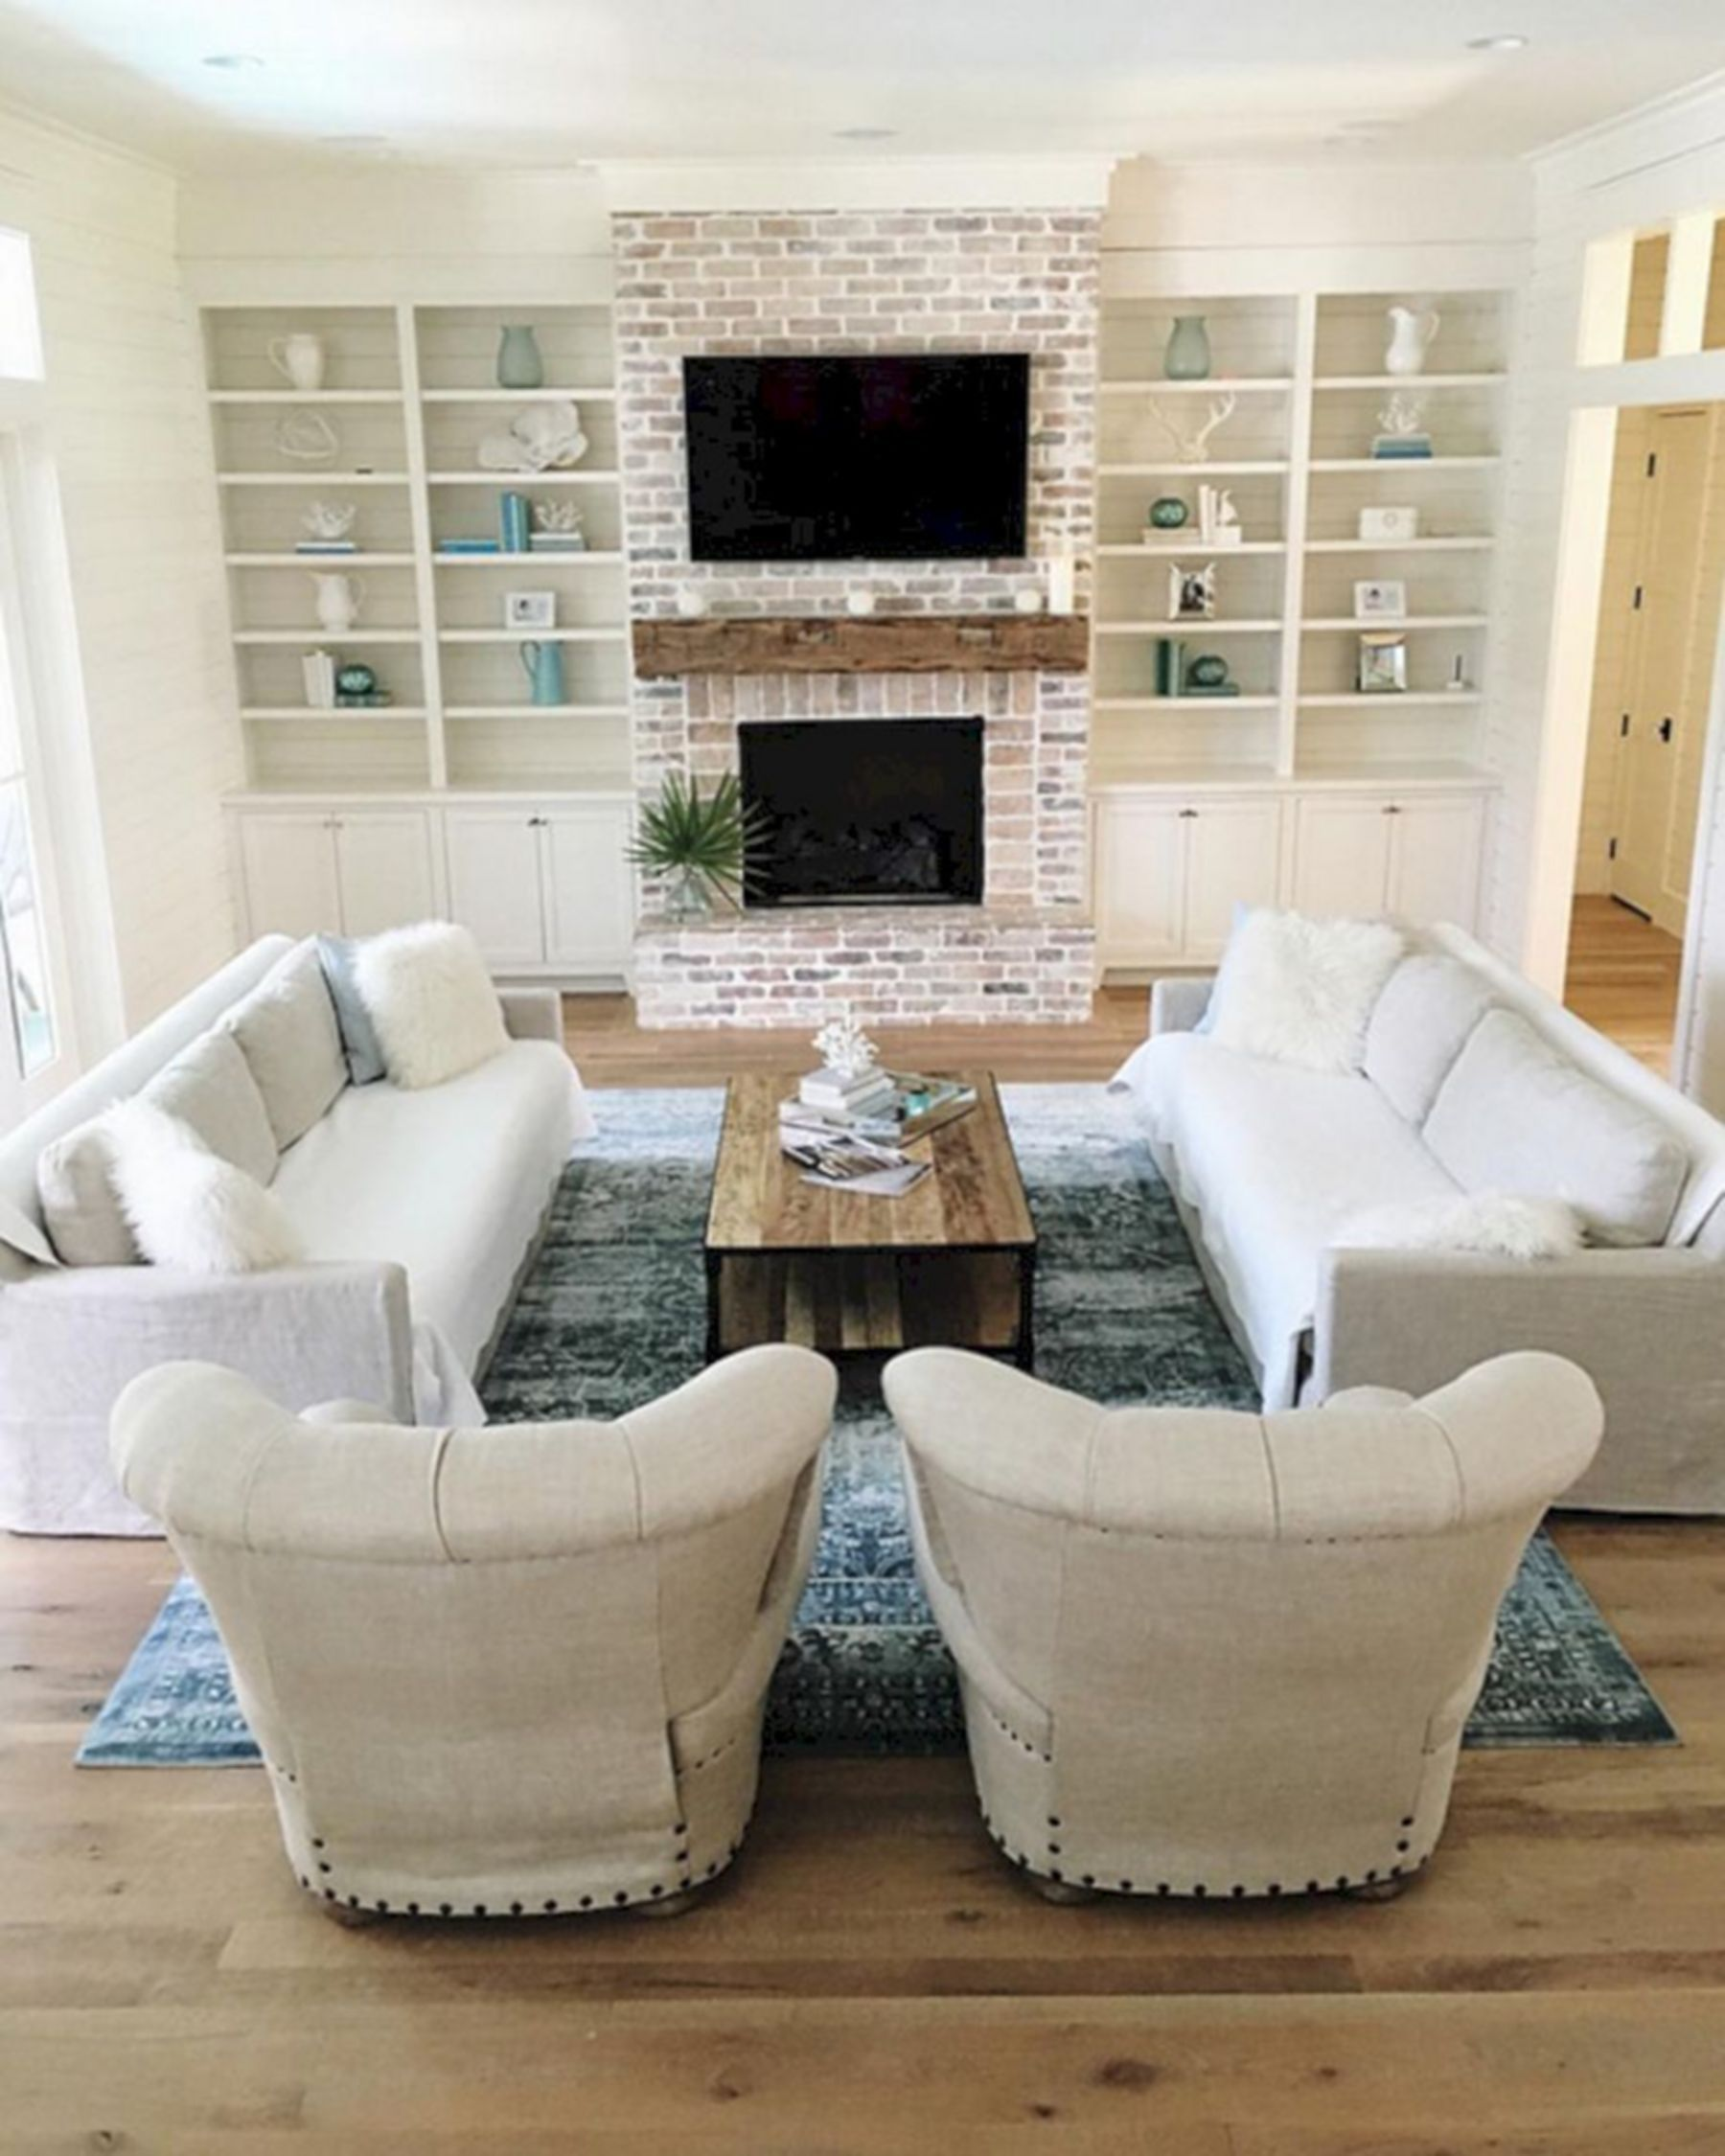 25 Awesome Living Room Design Ideas On A Budget: 25 Lovely Farmhouse Living Room With Awesome Fireplace